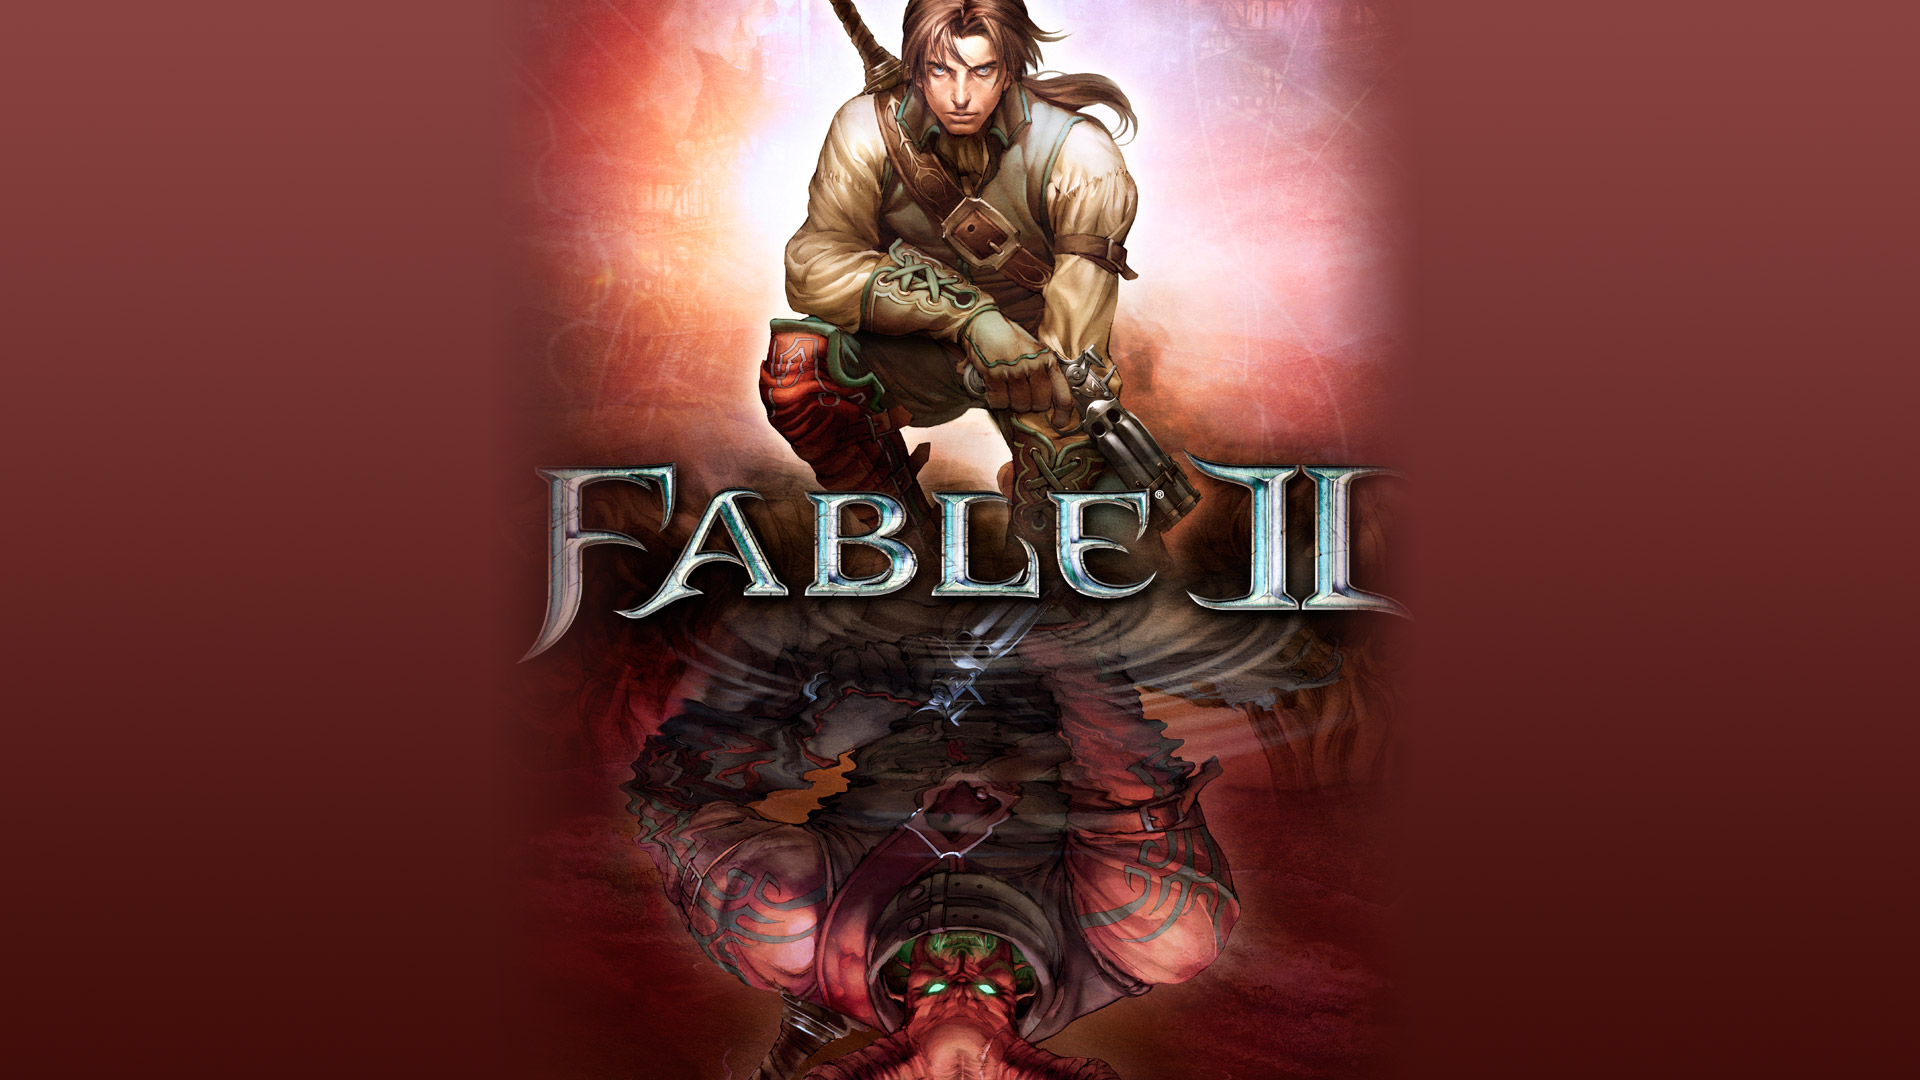 Fable 2 Wallpaper in 1920x1080